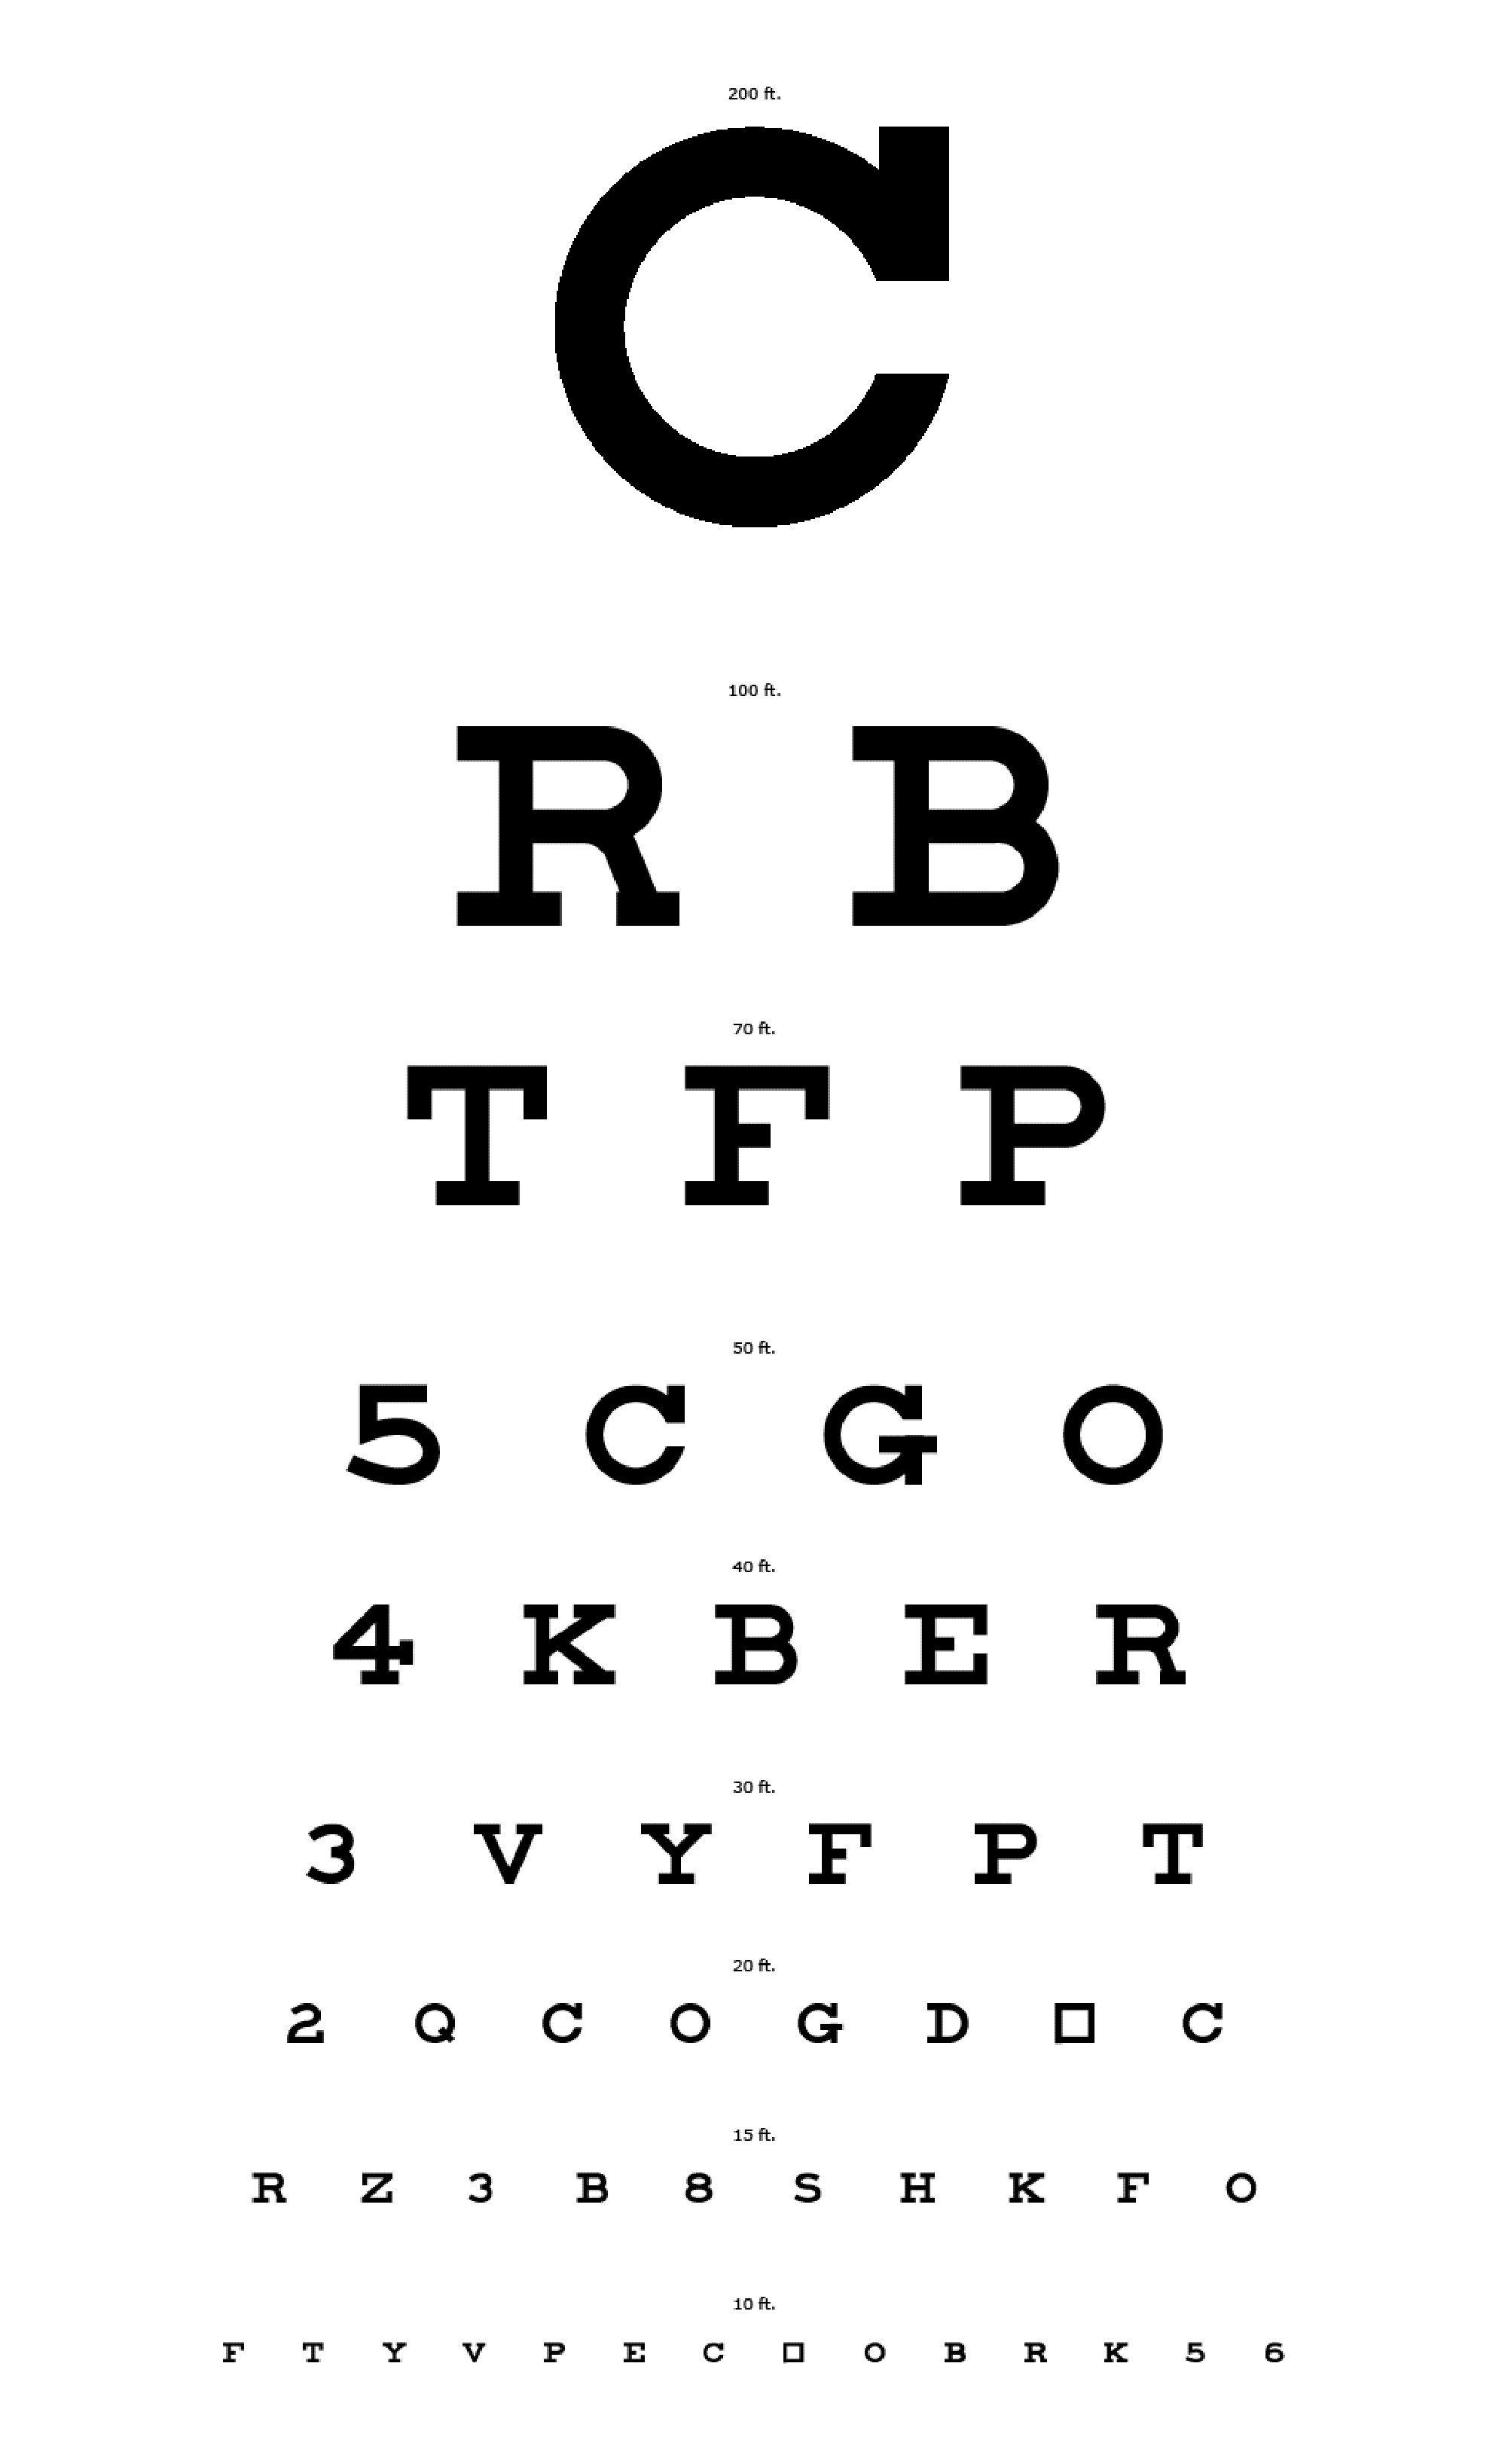 It is an image of Printable Eye Charts for hand held